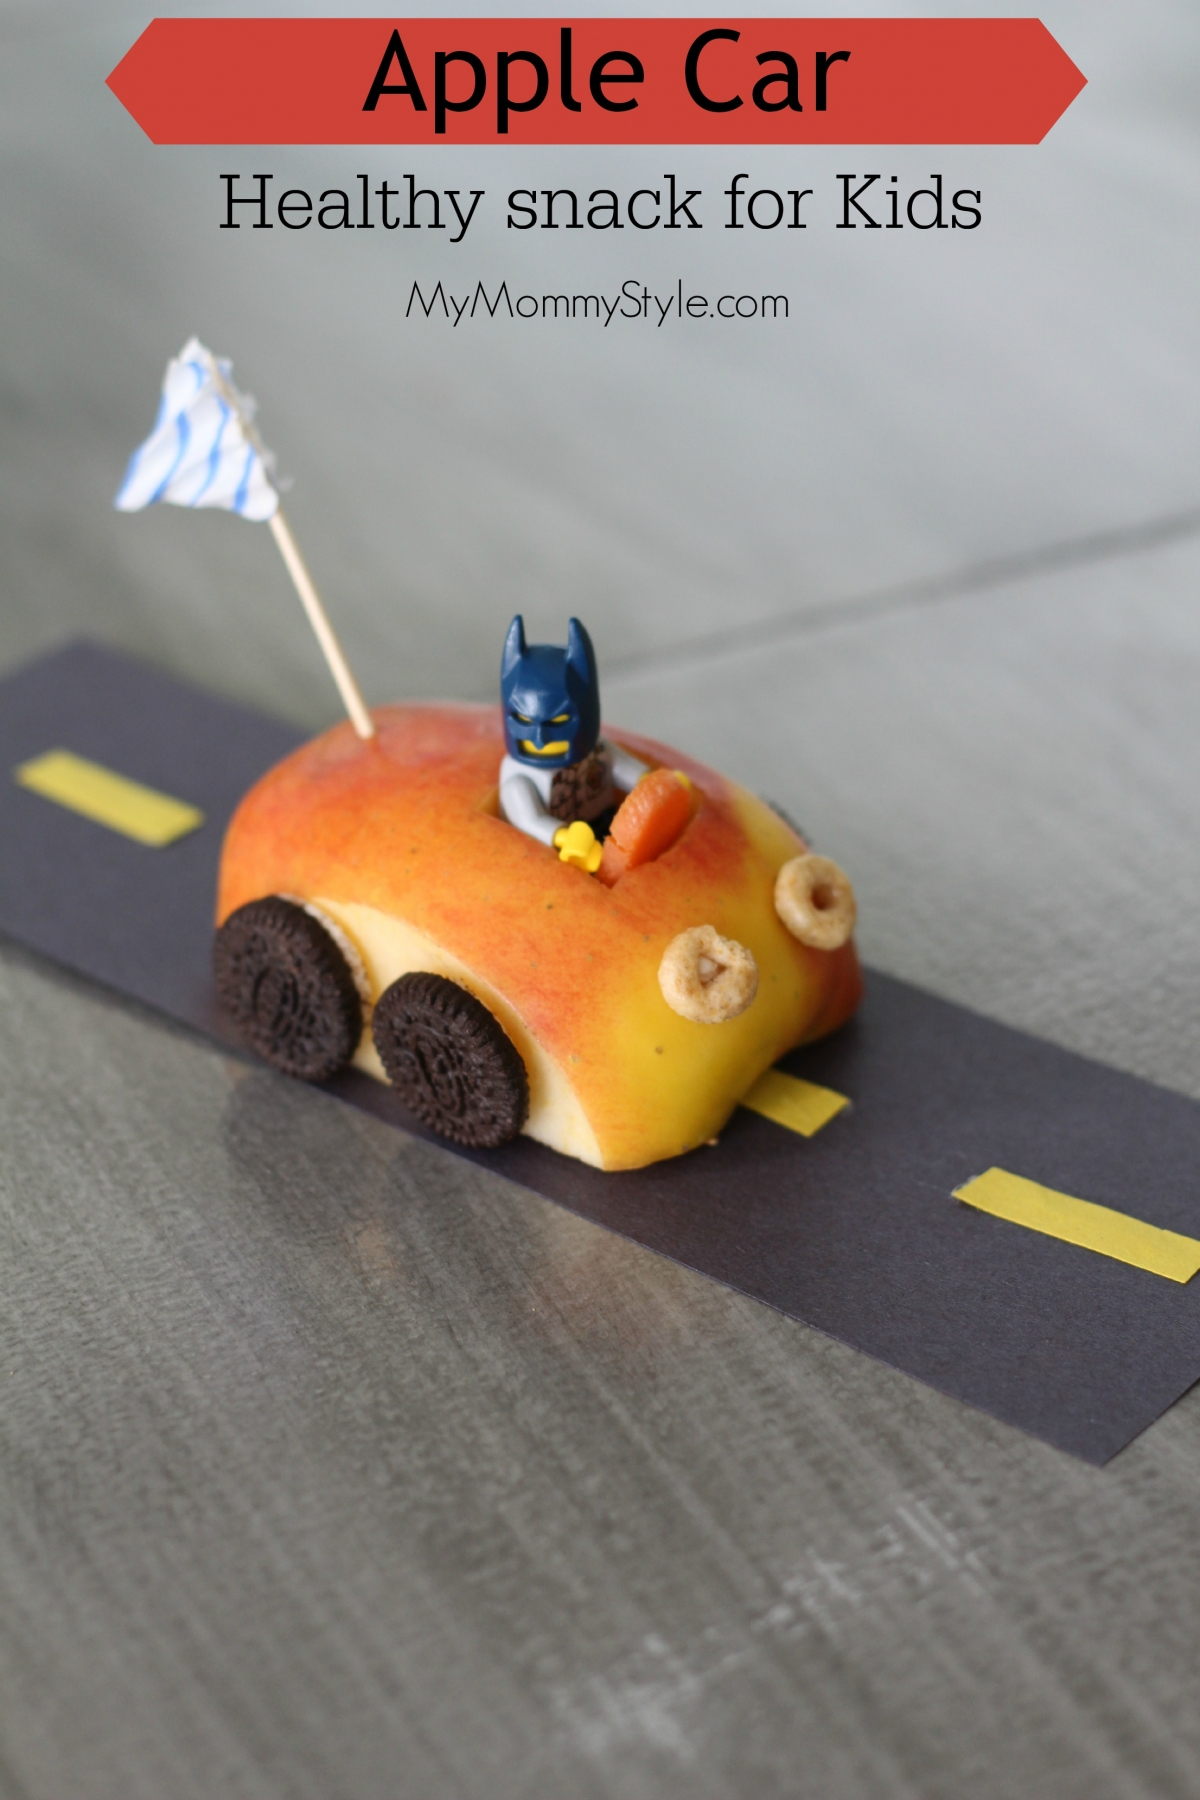 apple car healthy snack for kids mymommystylecom